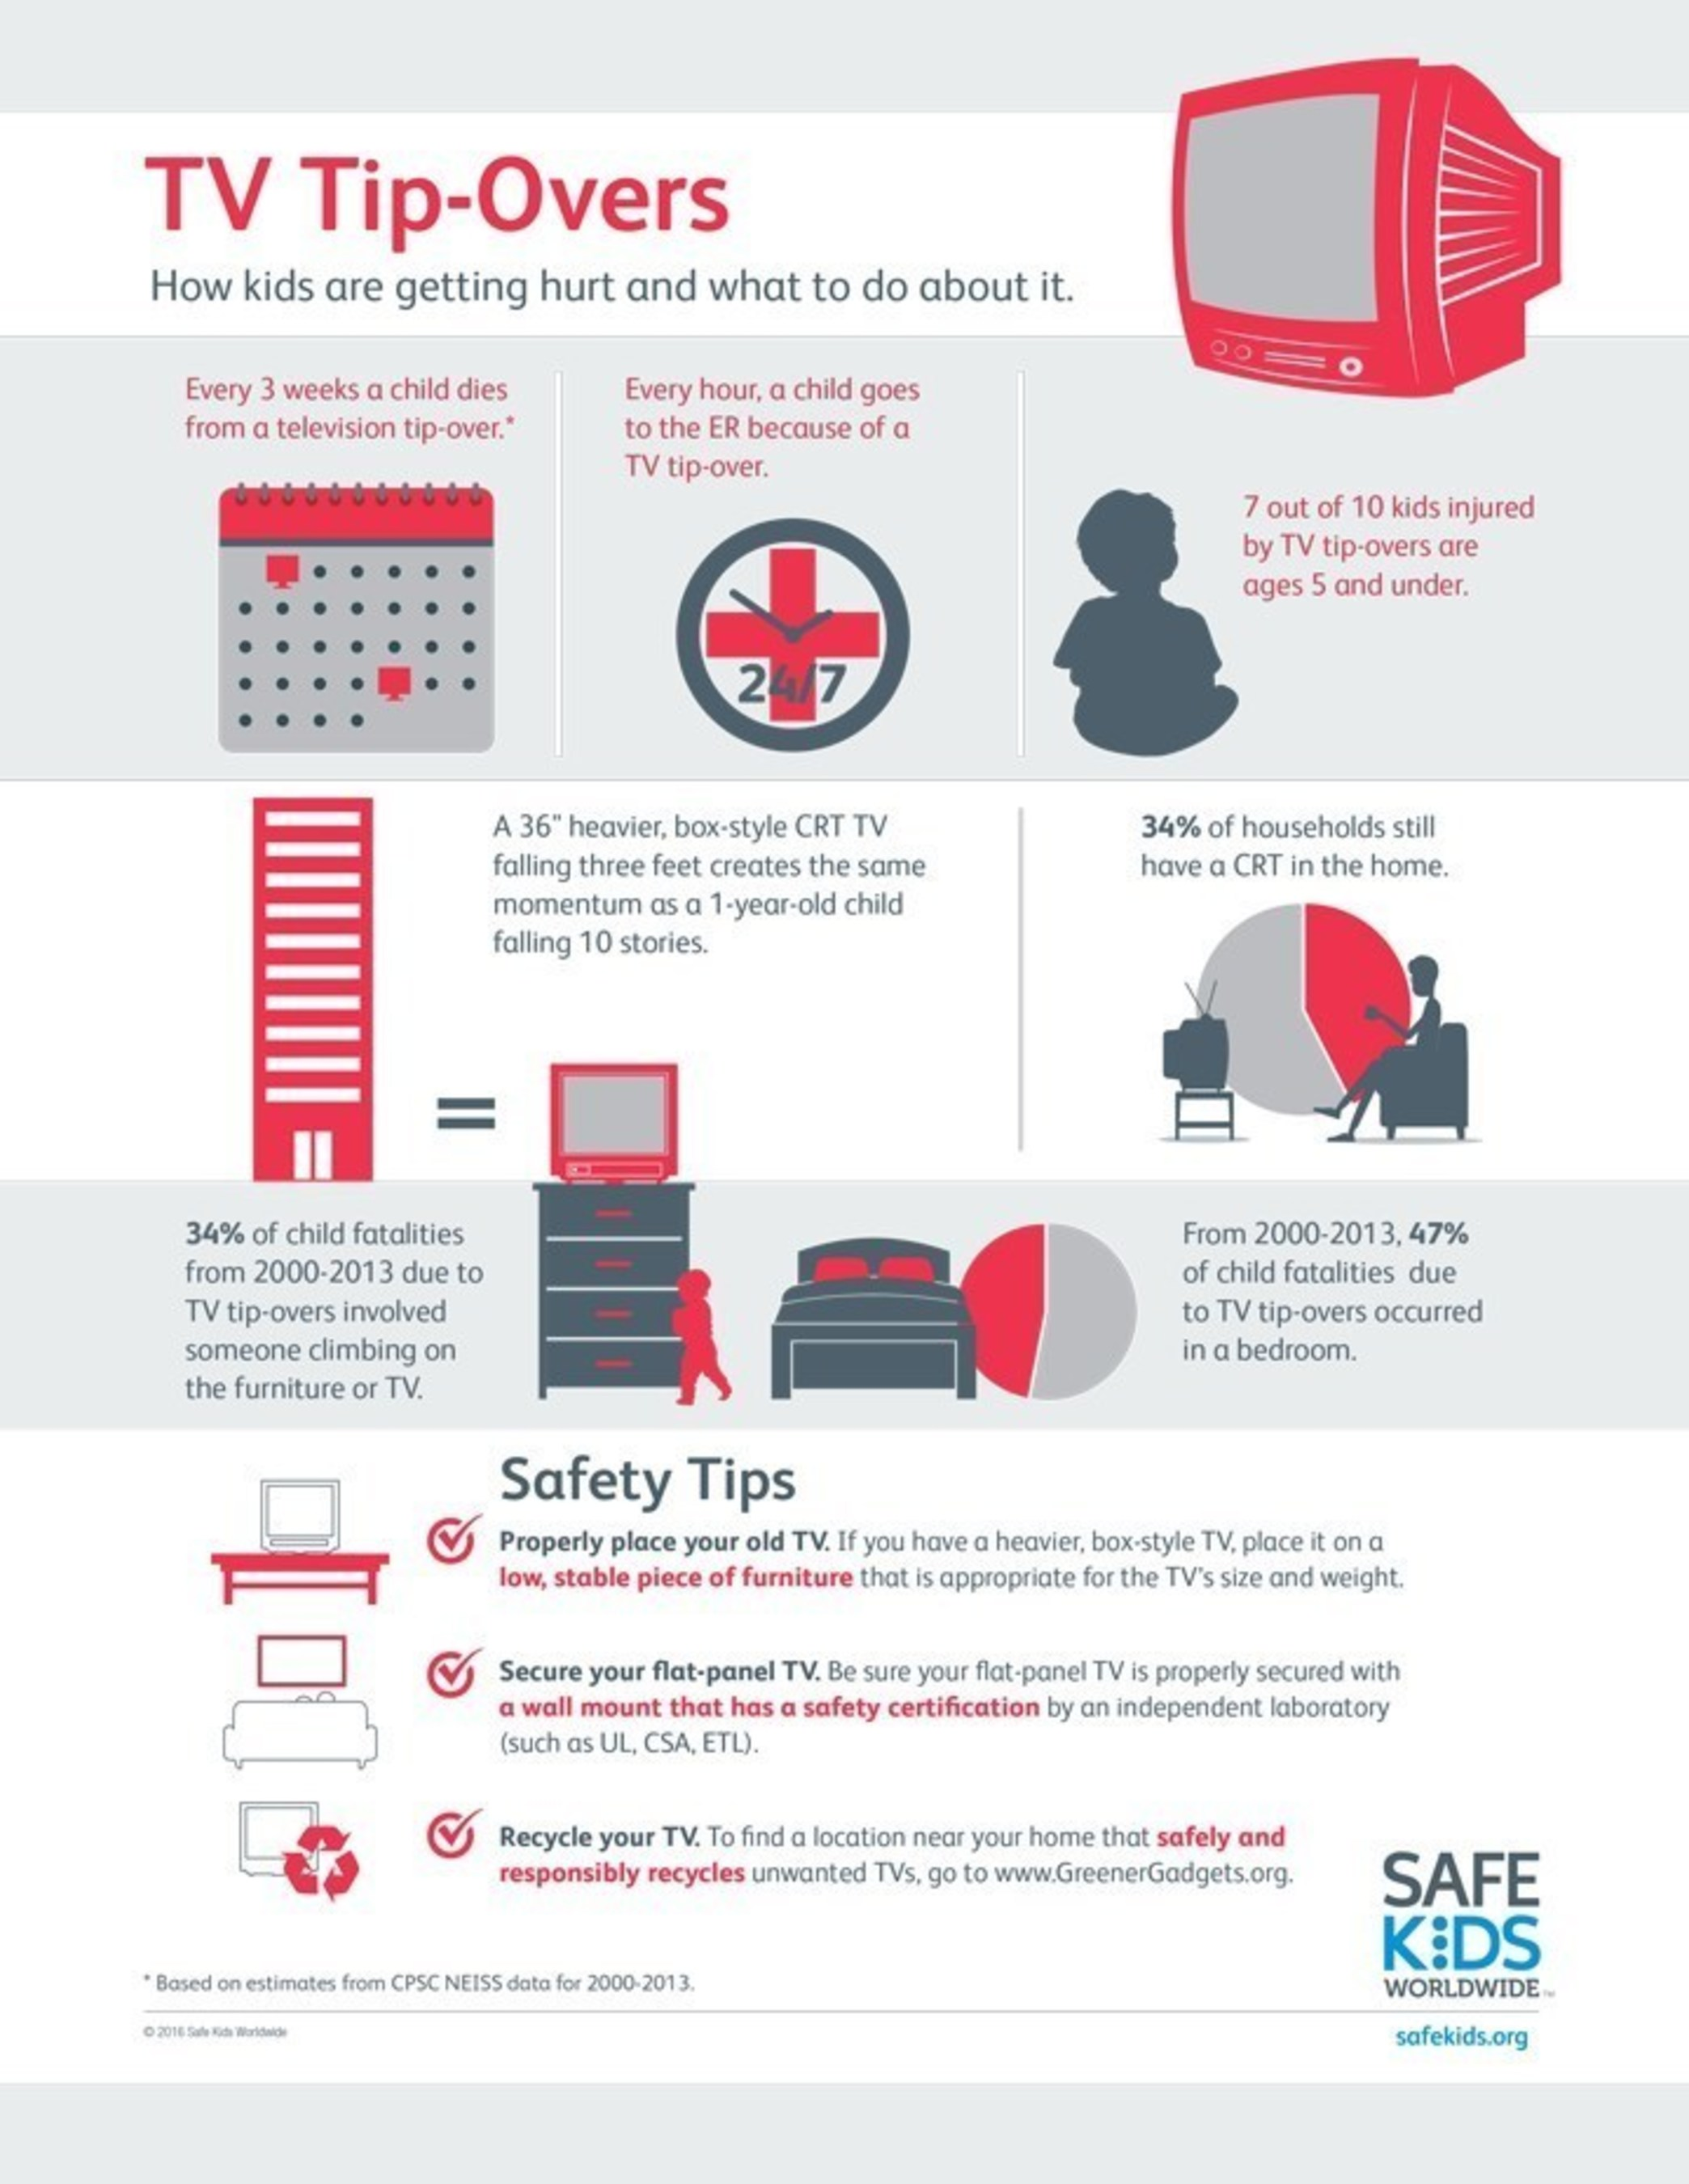 TV Tip-Overs Infographic: How kids are getting hurt and what to do about it.